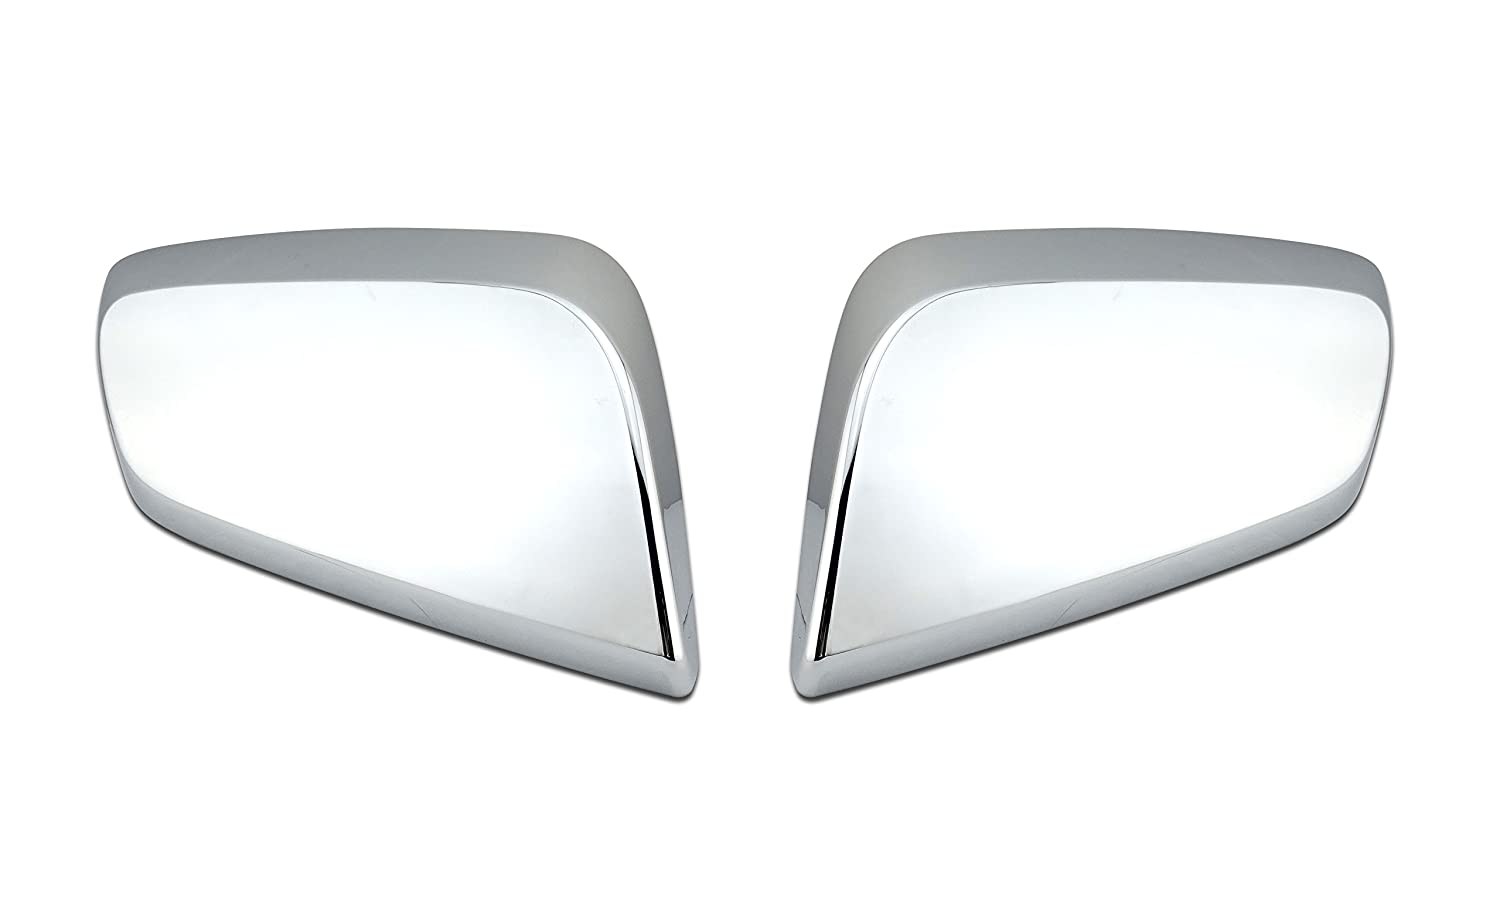 EZ Motoring Deluxe Chrome Mirror Cover Overlay Trim for 2014-2018 Chevy Impala